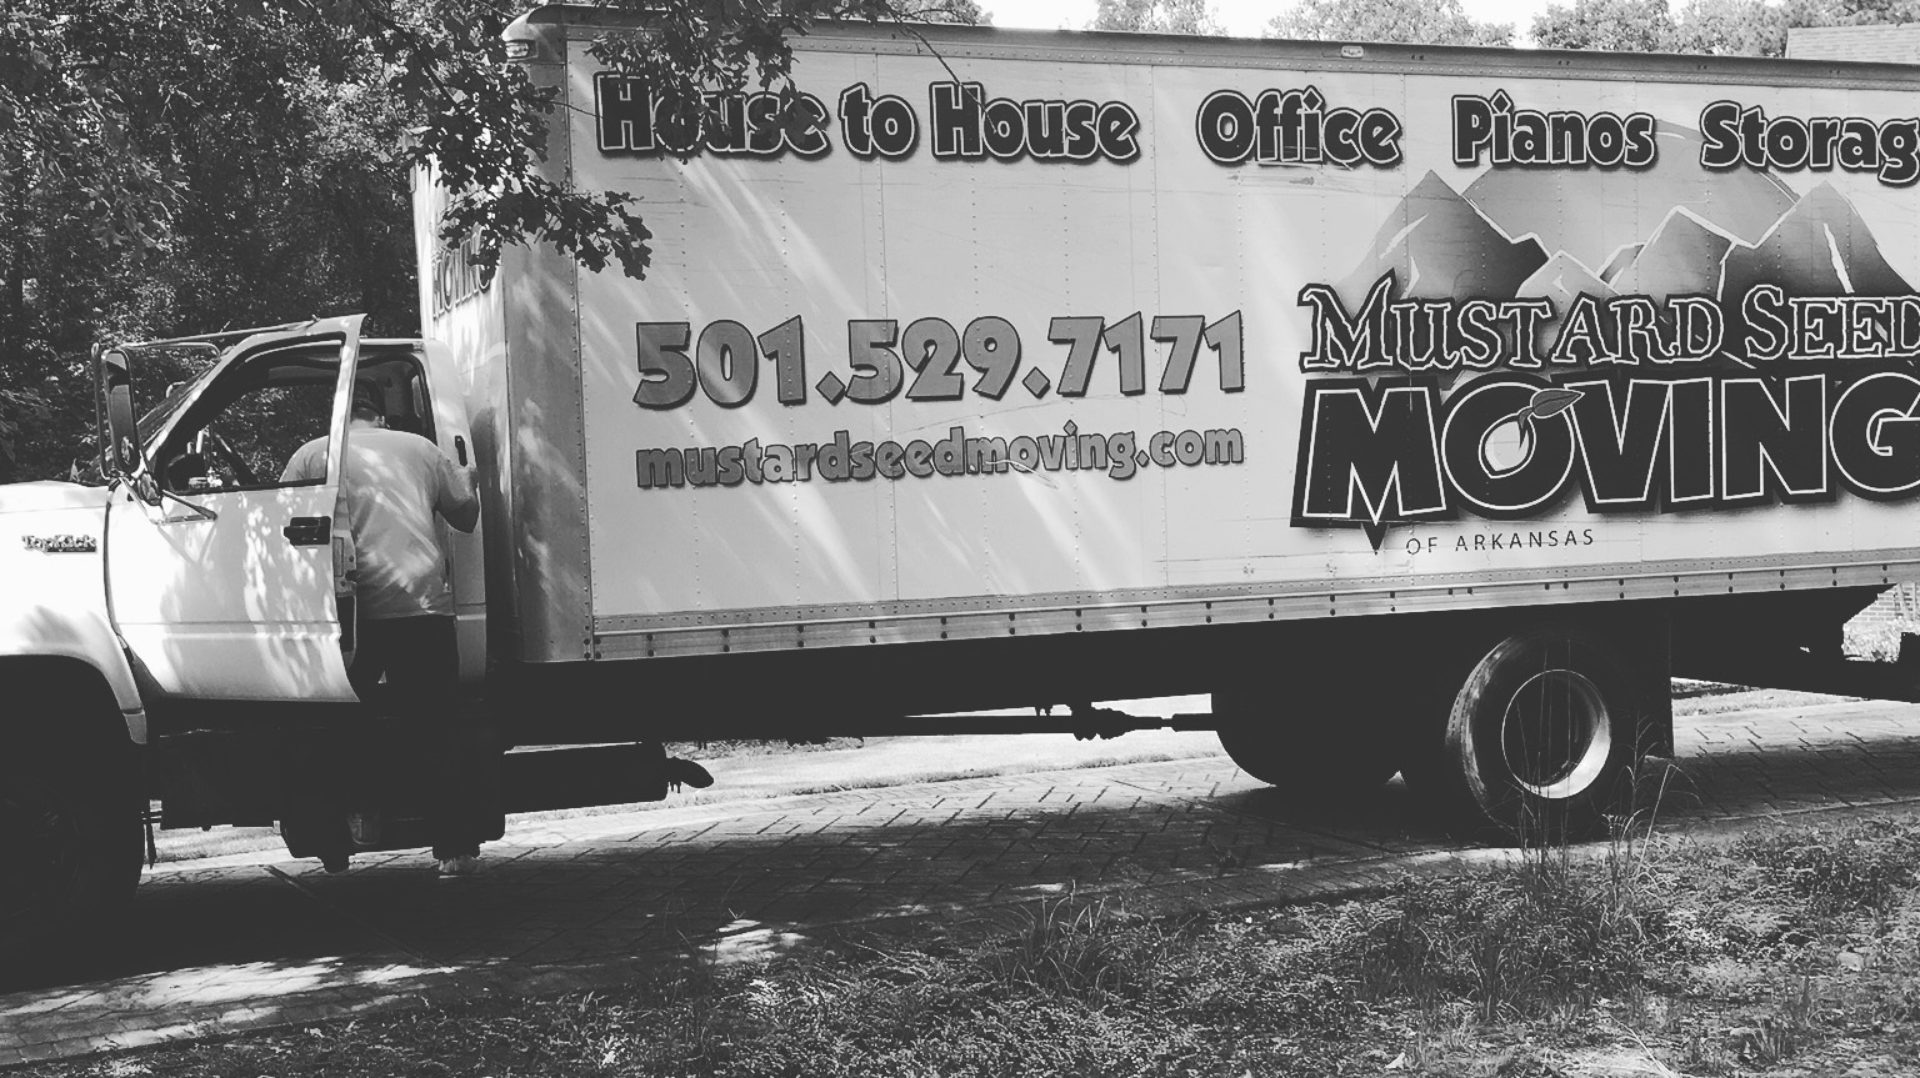 Little Rock Movers